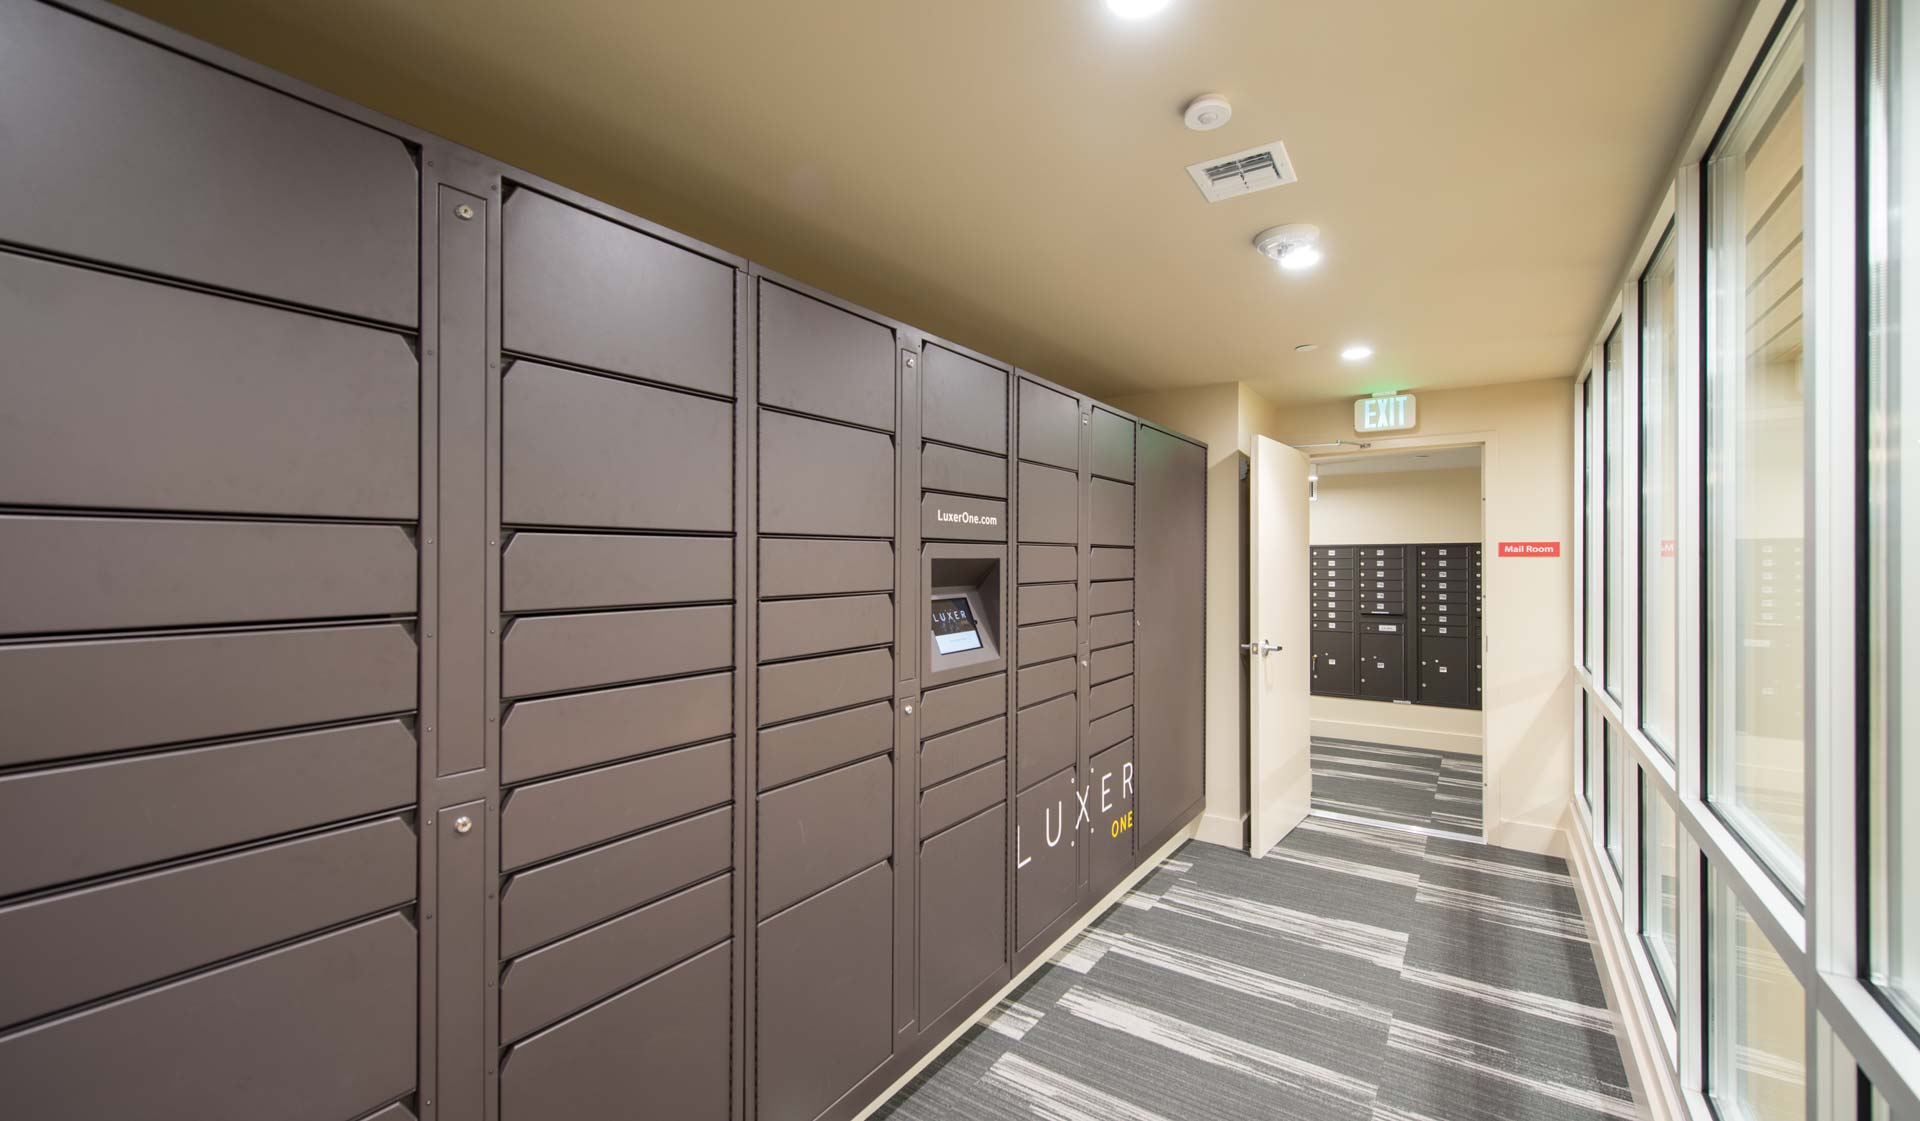 Boulder Creek Apartments - Boulder, CO - package lockers